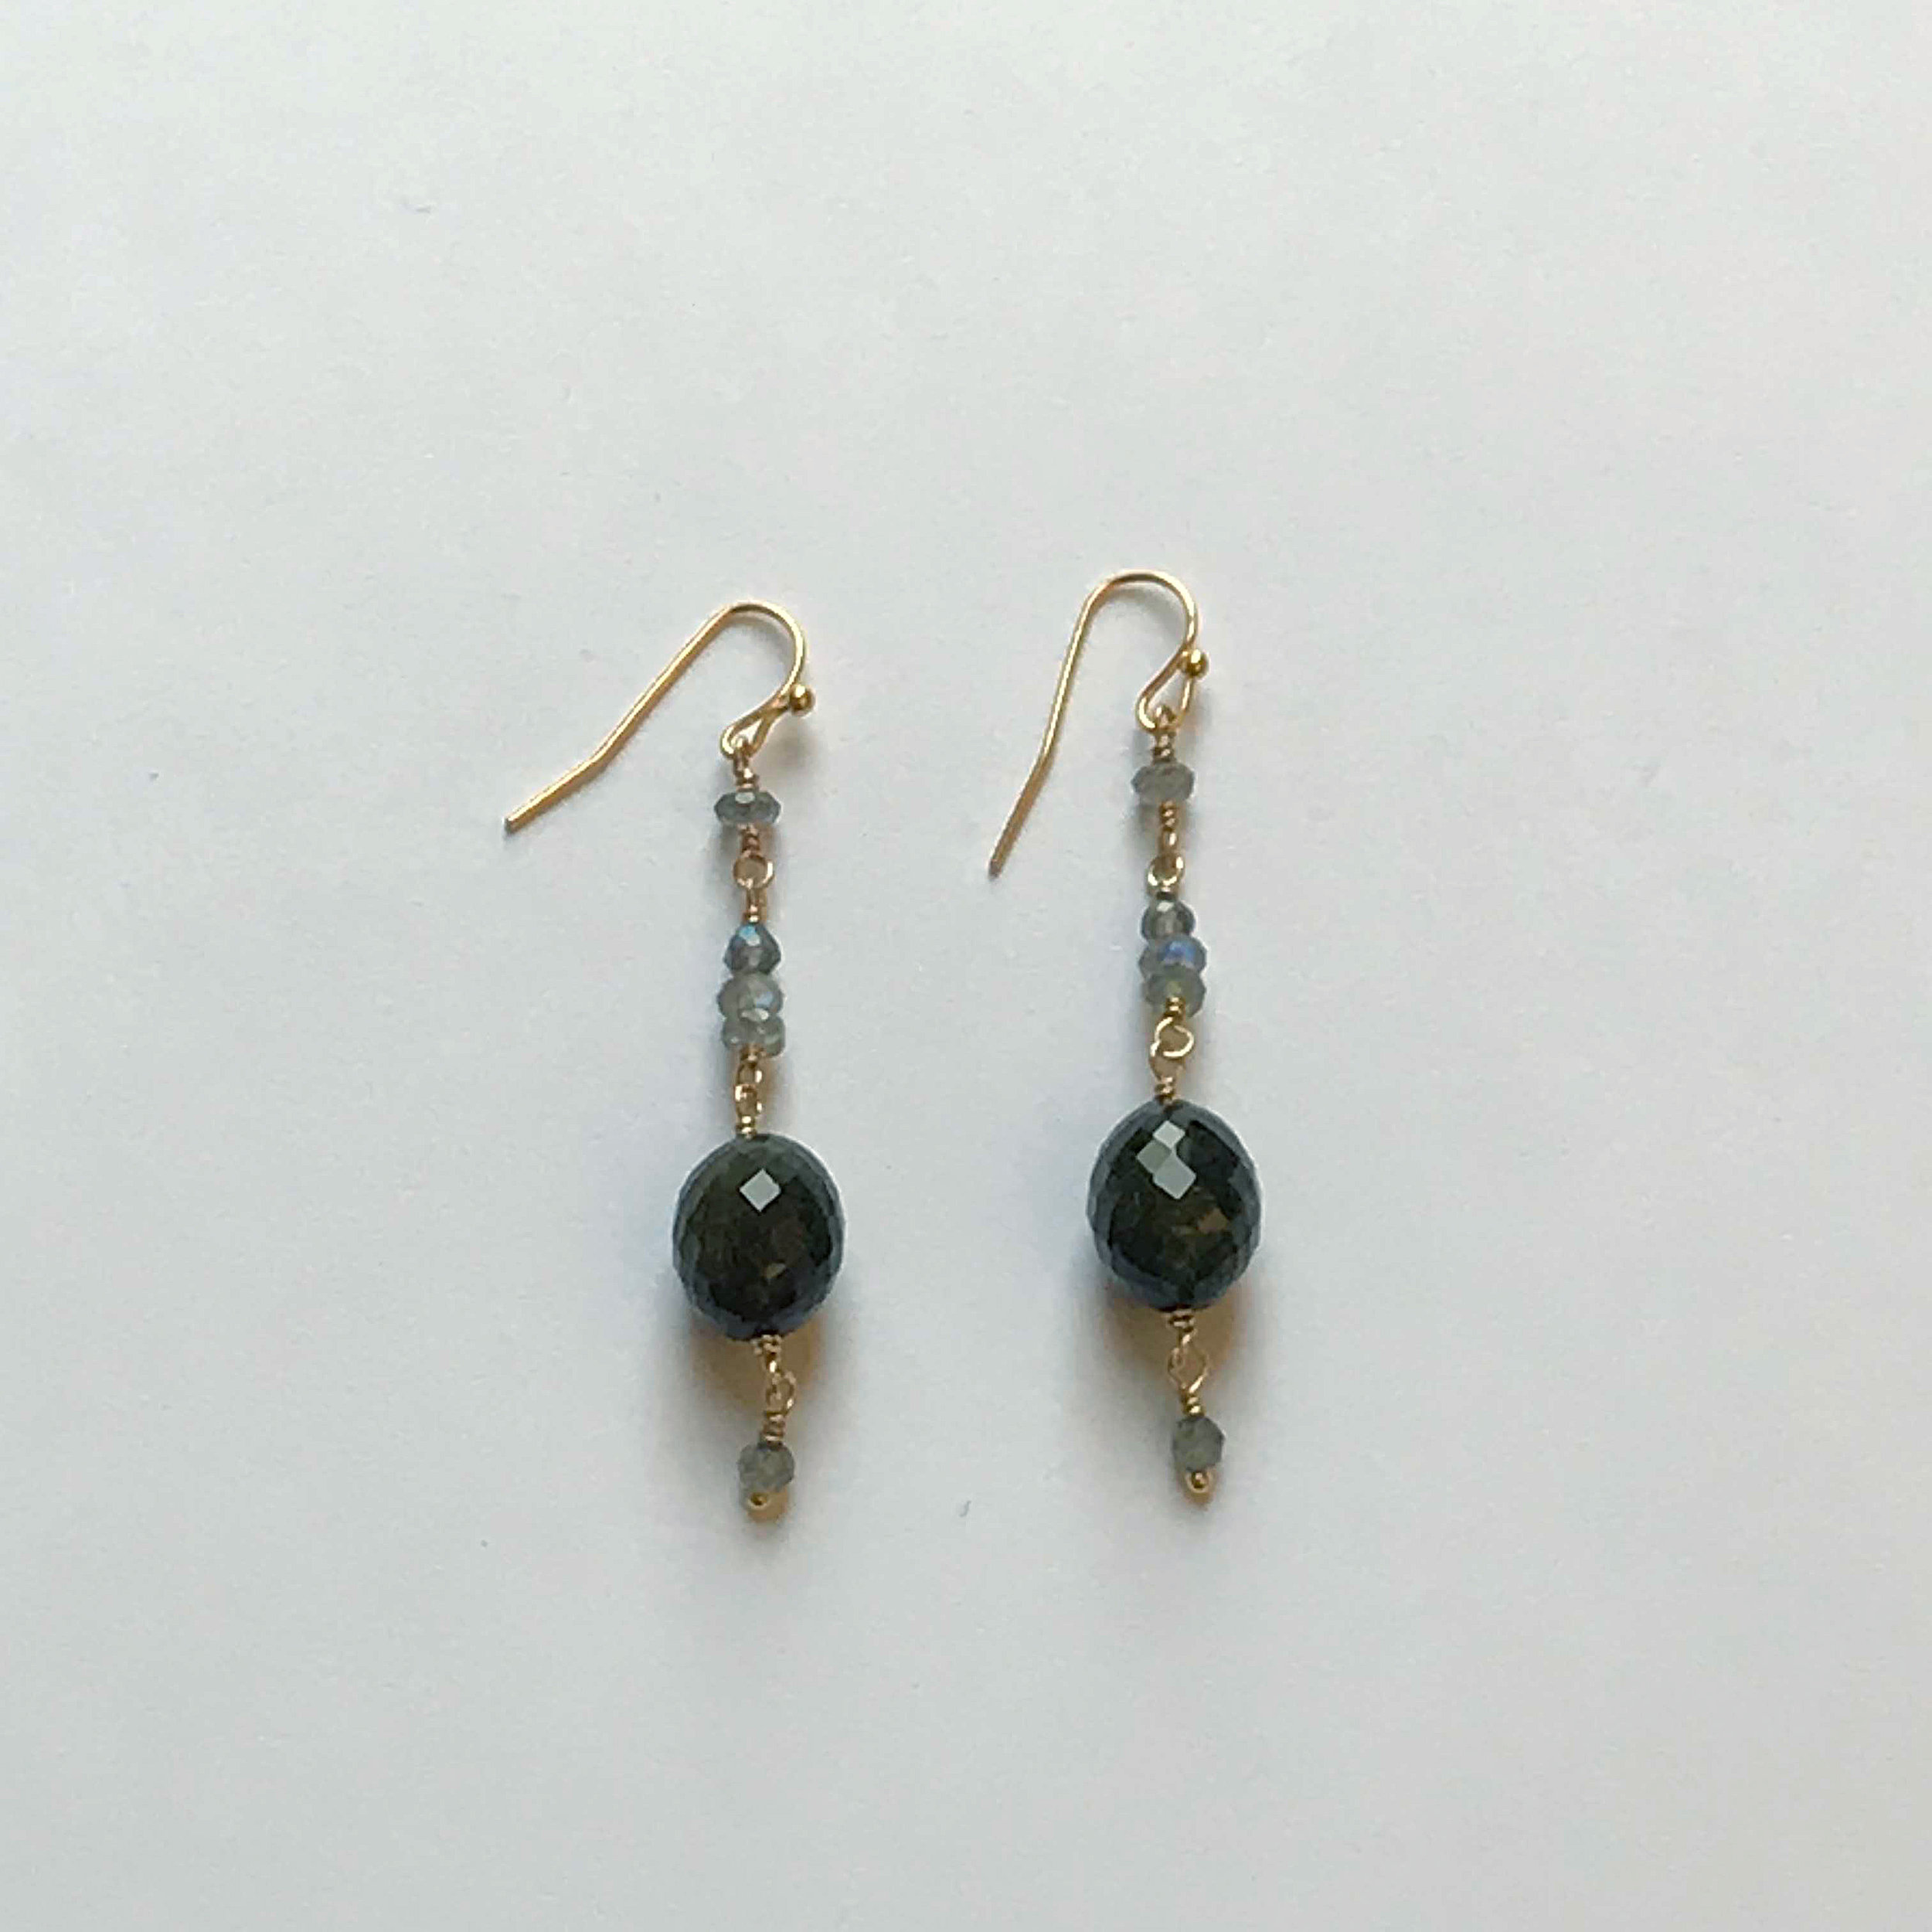 $325 Gold Filled Green Tourmaline Labradorite Earrings